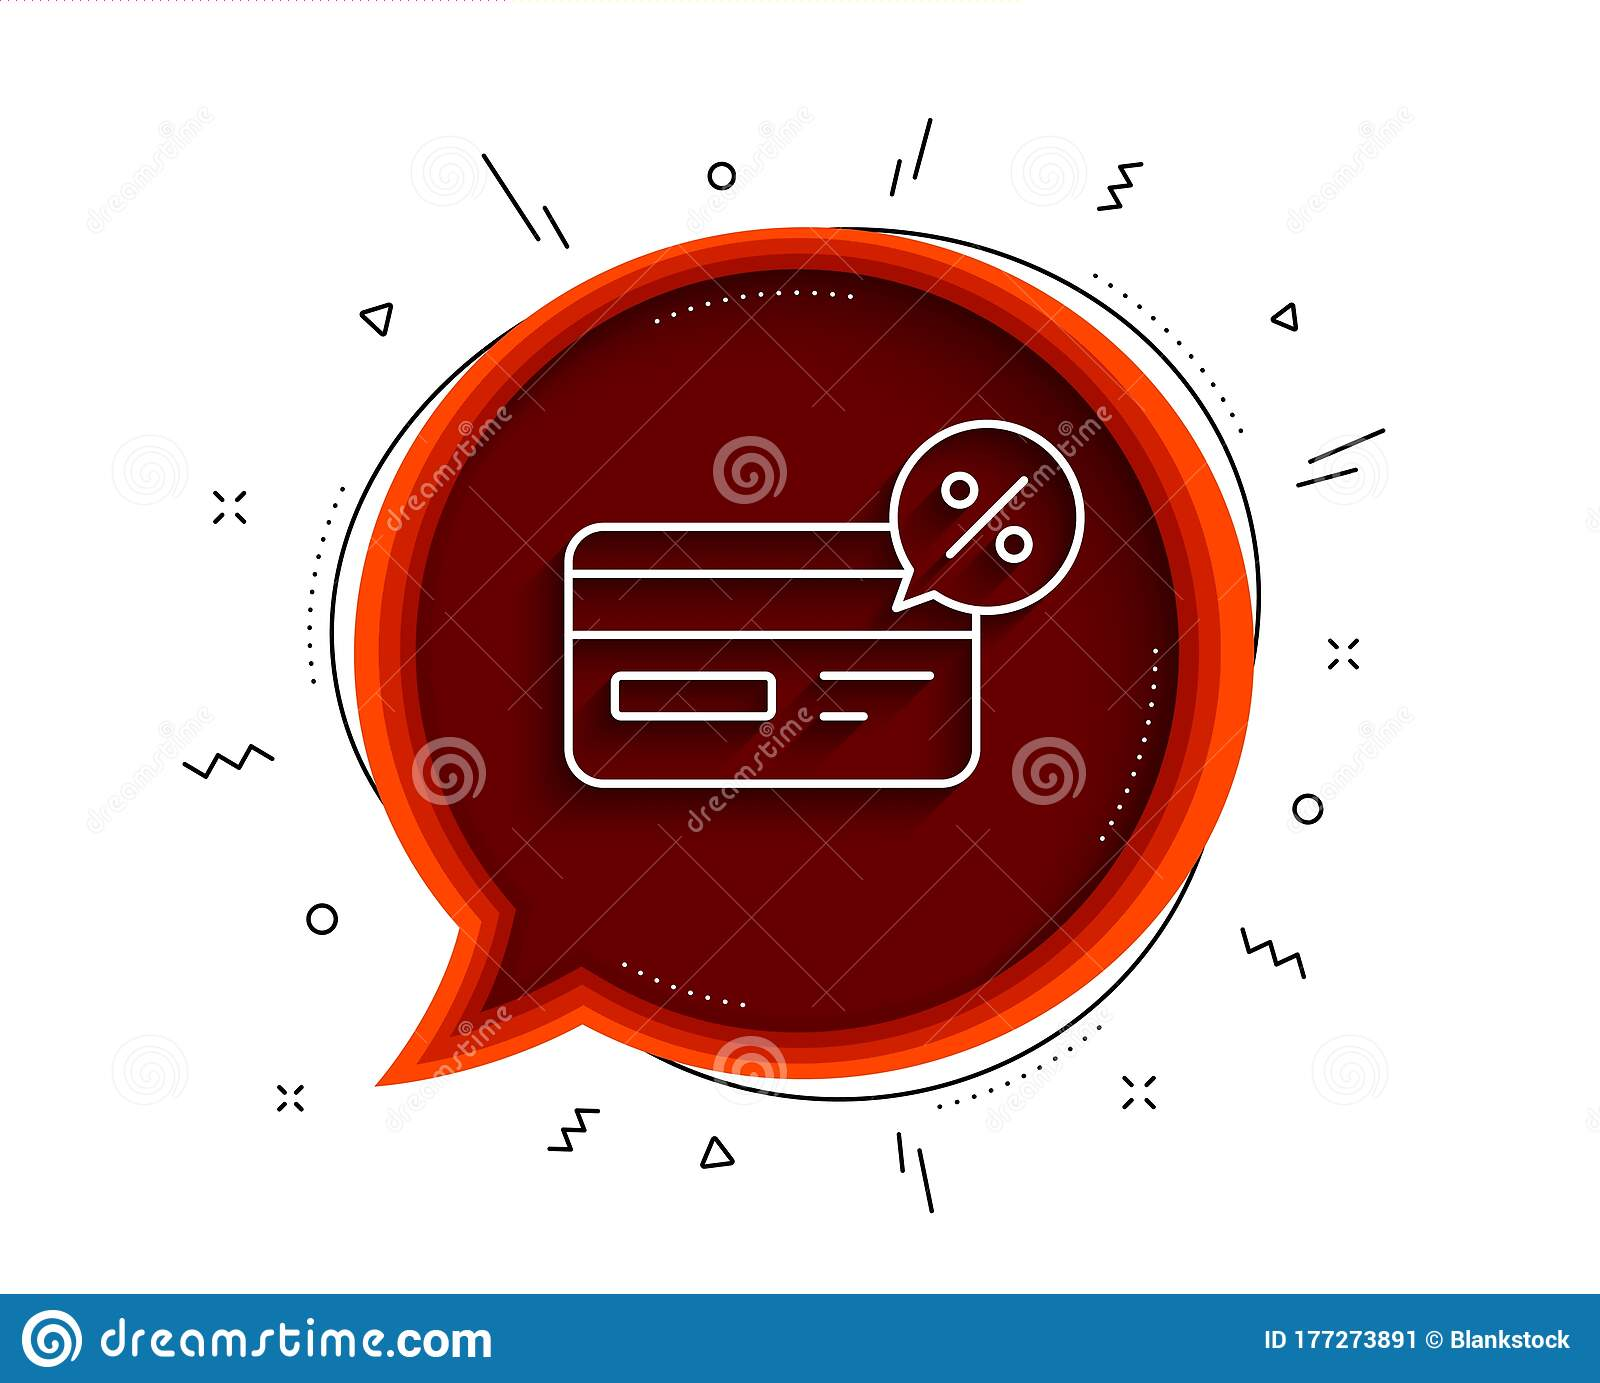 credit card line icon cashback service vector stock vector illustration of banking outline 177273891 credit card line icon cashback service vector stock vector illustration of banking outline 177273891